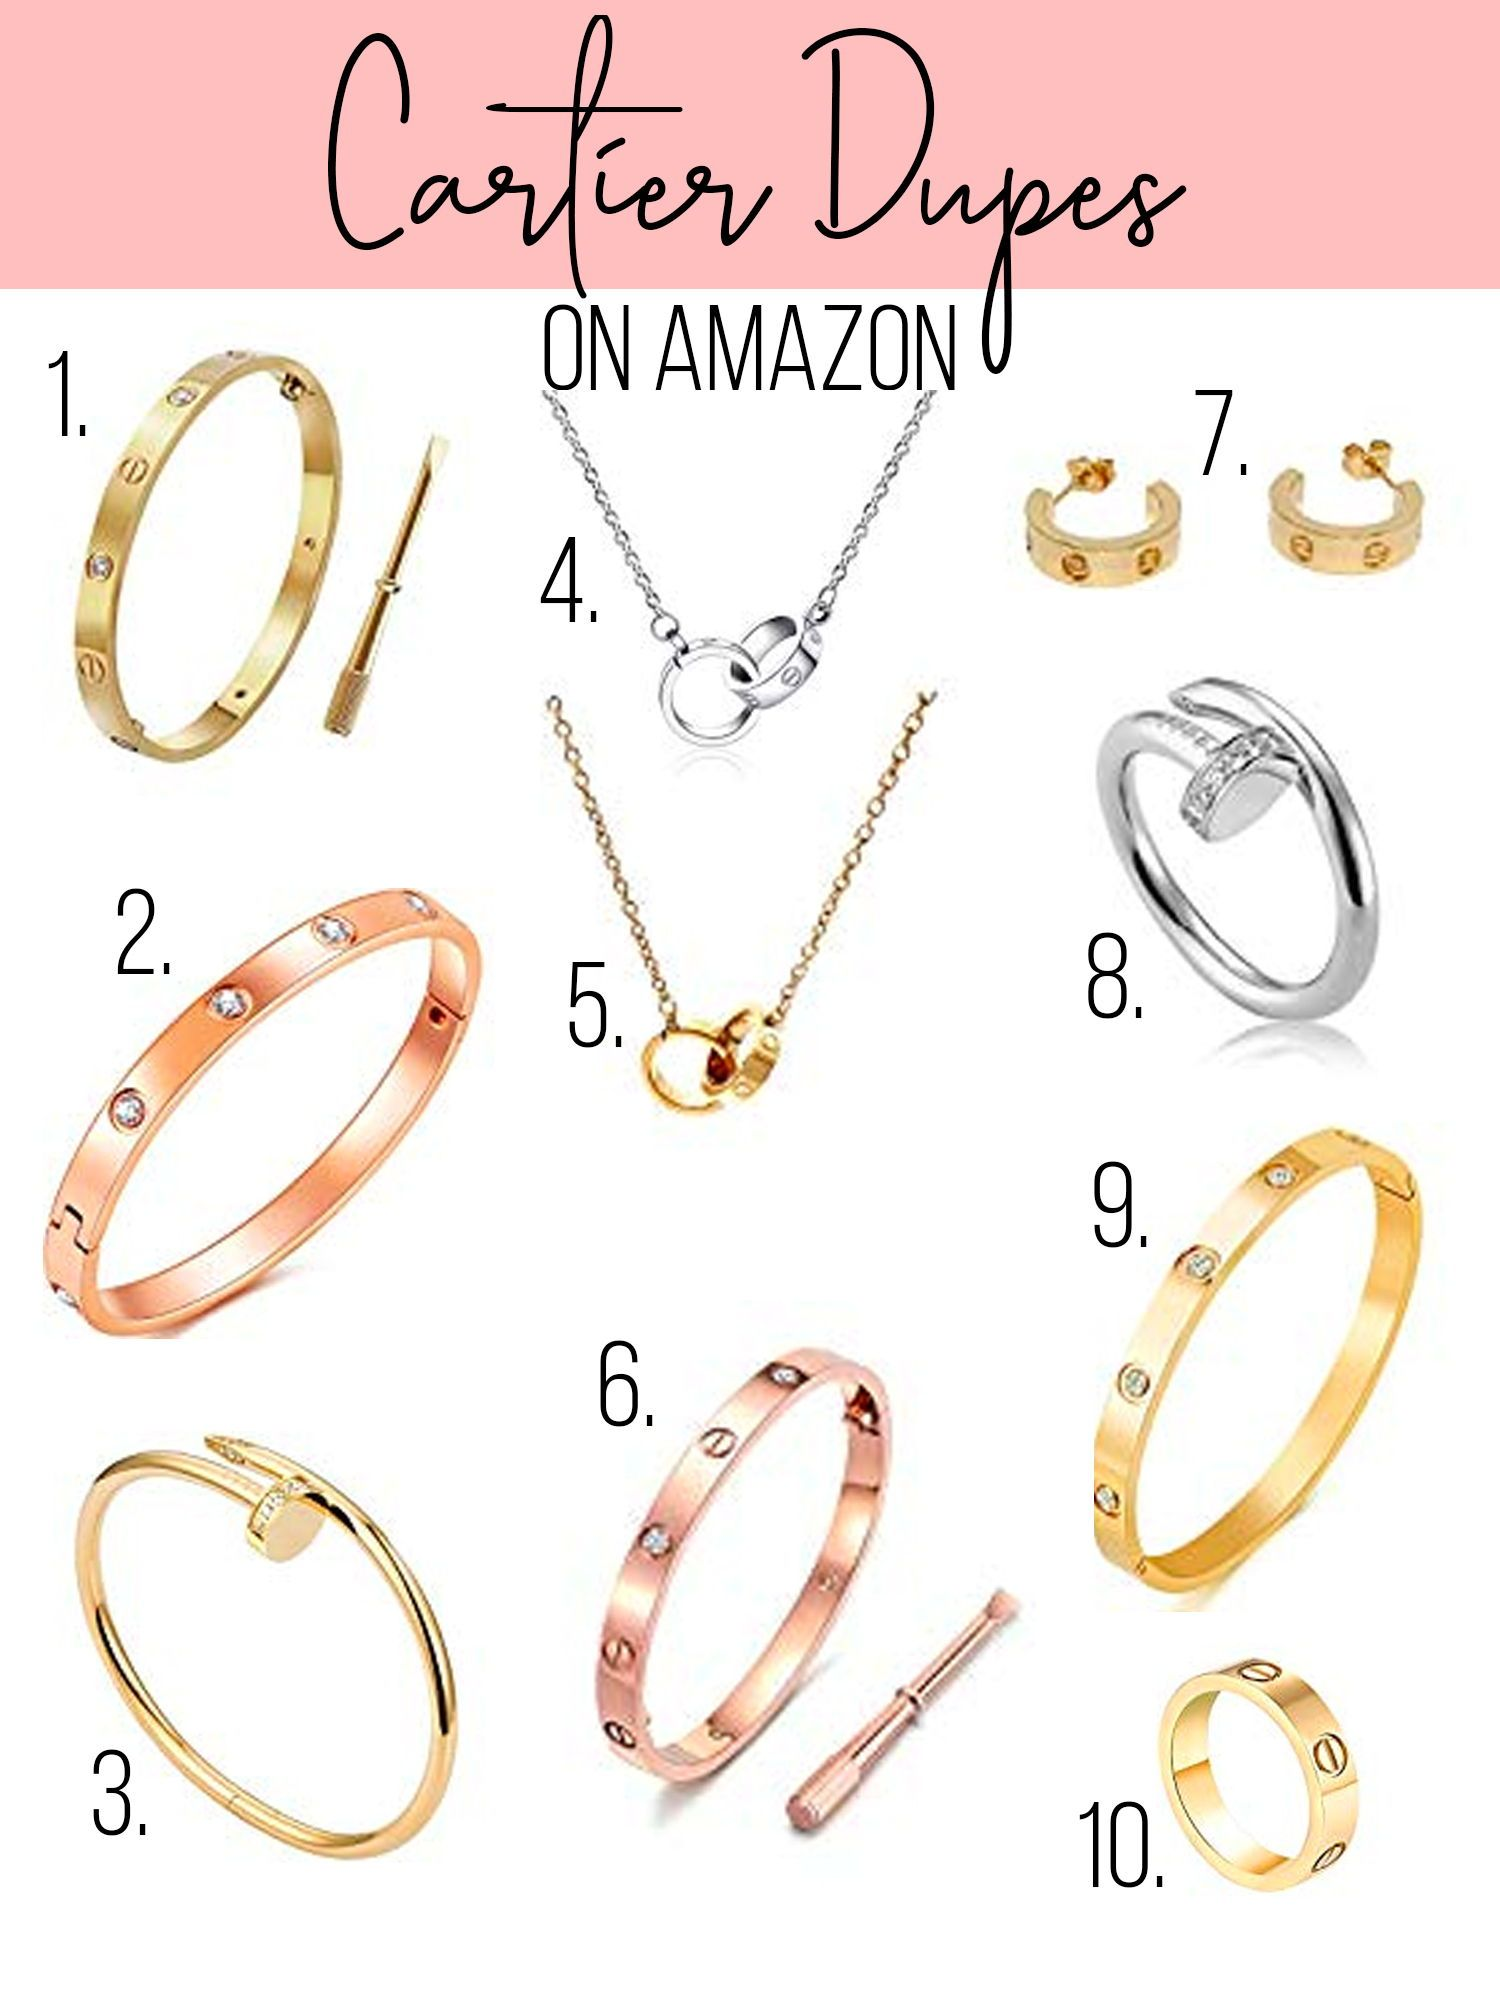 Cartier Amazon Dupes in 2020 Dupes, Cartier love ring